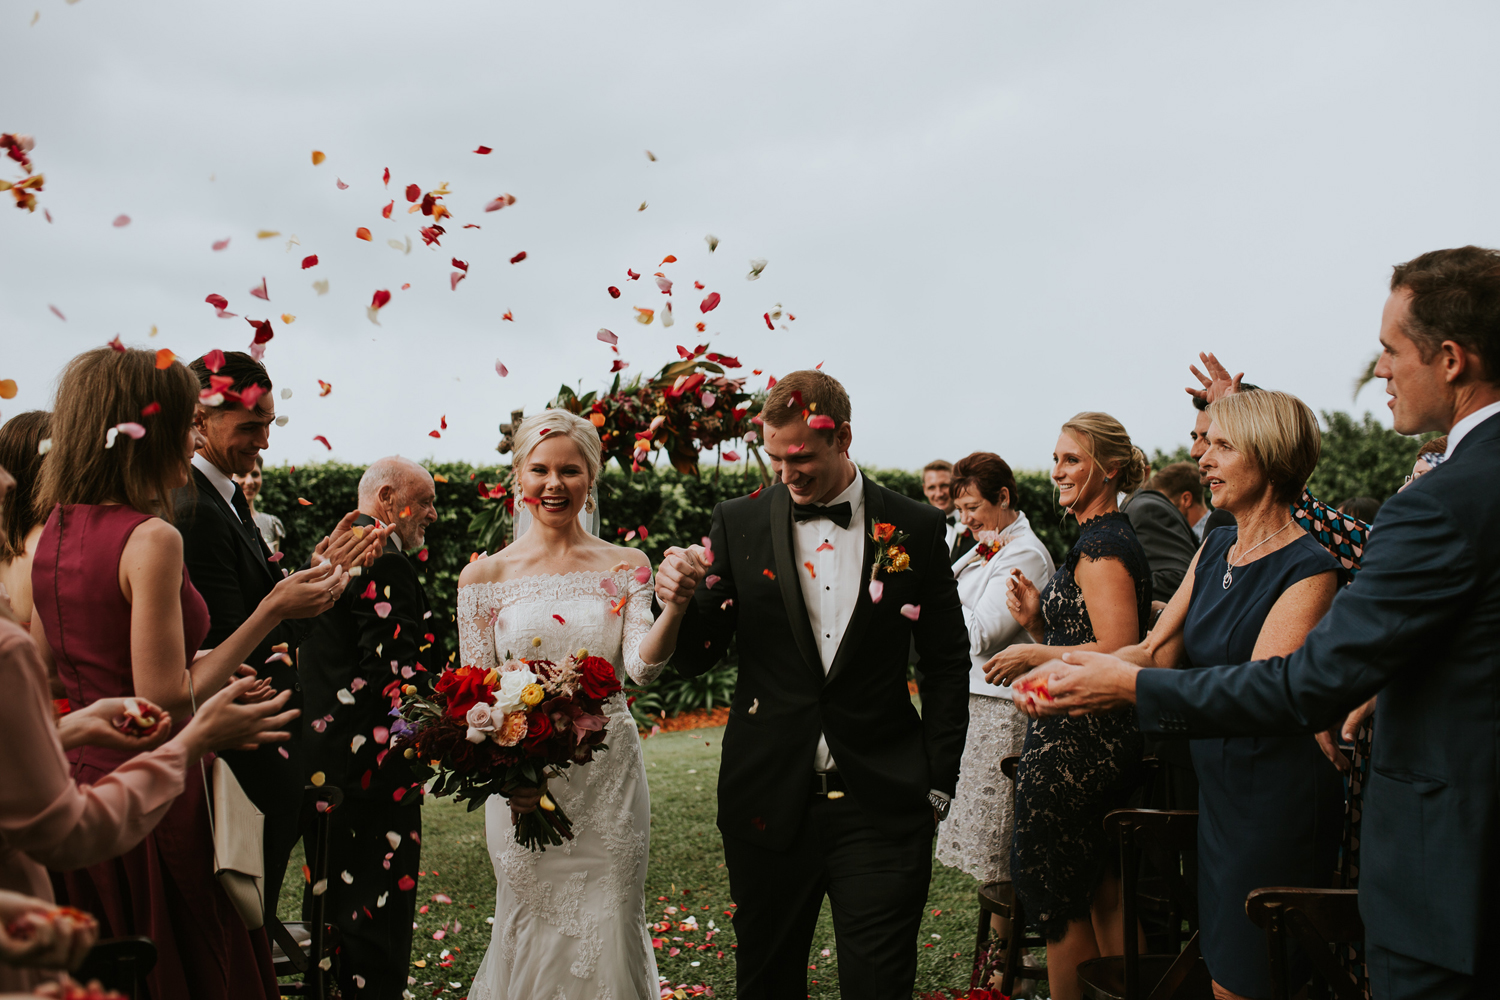 508-byron_bay_wedding_photographer.jpg